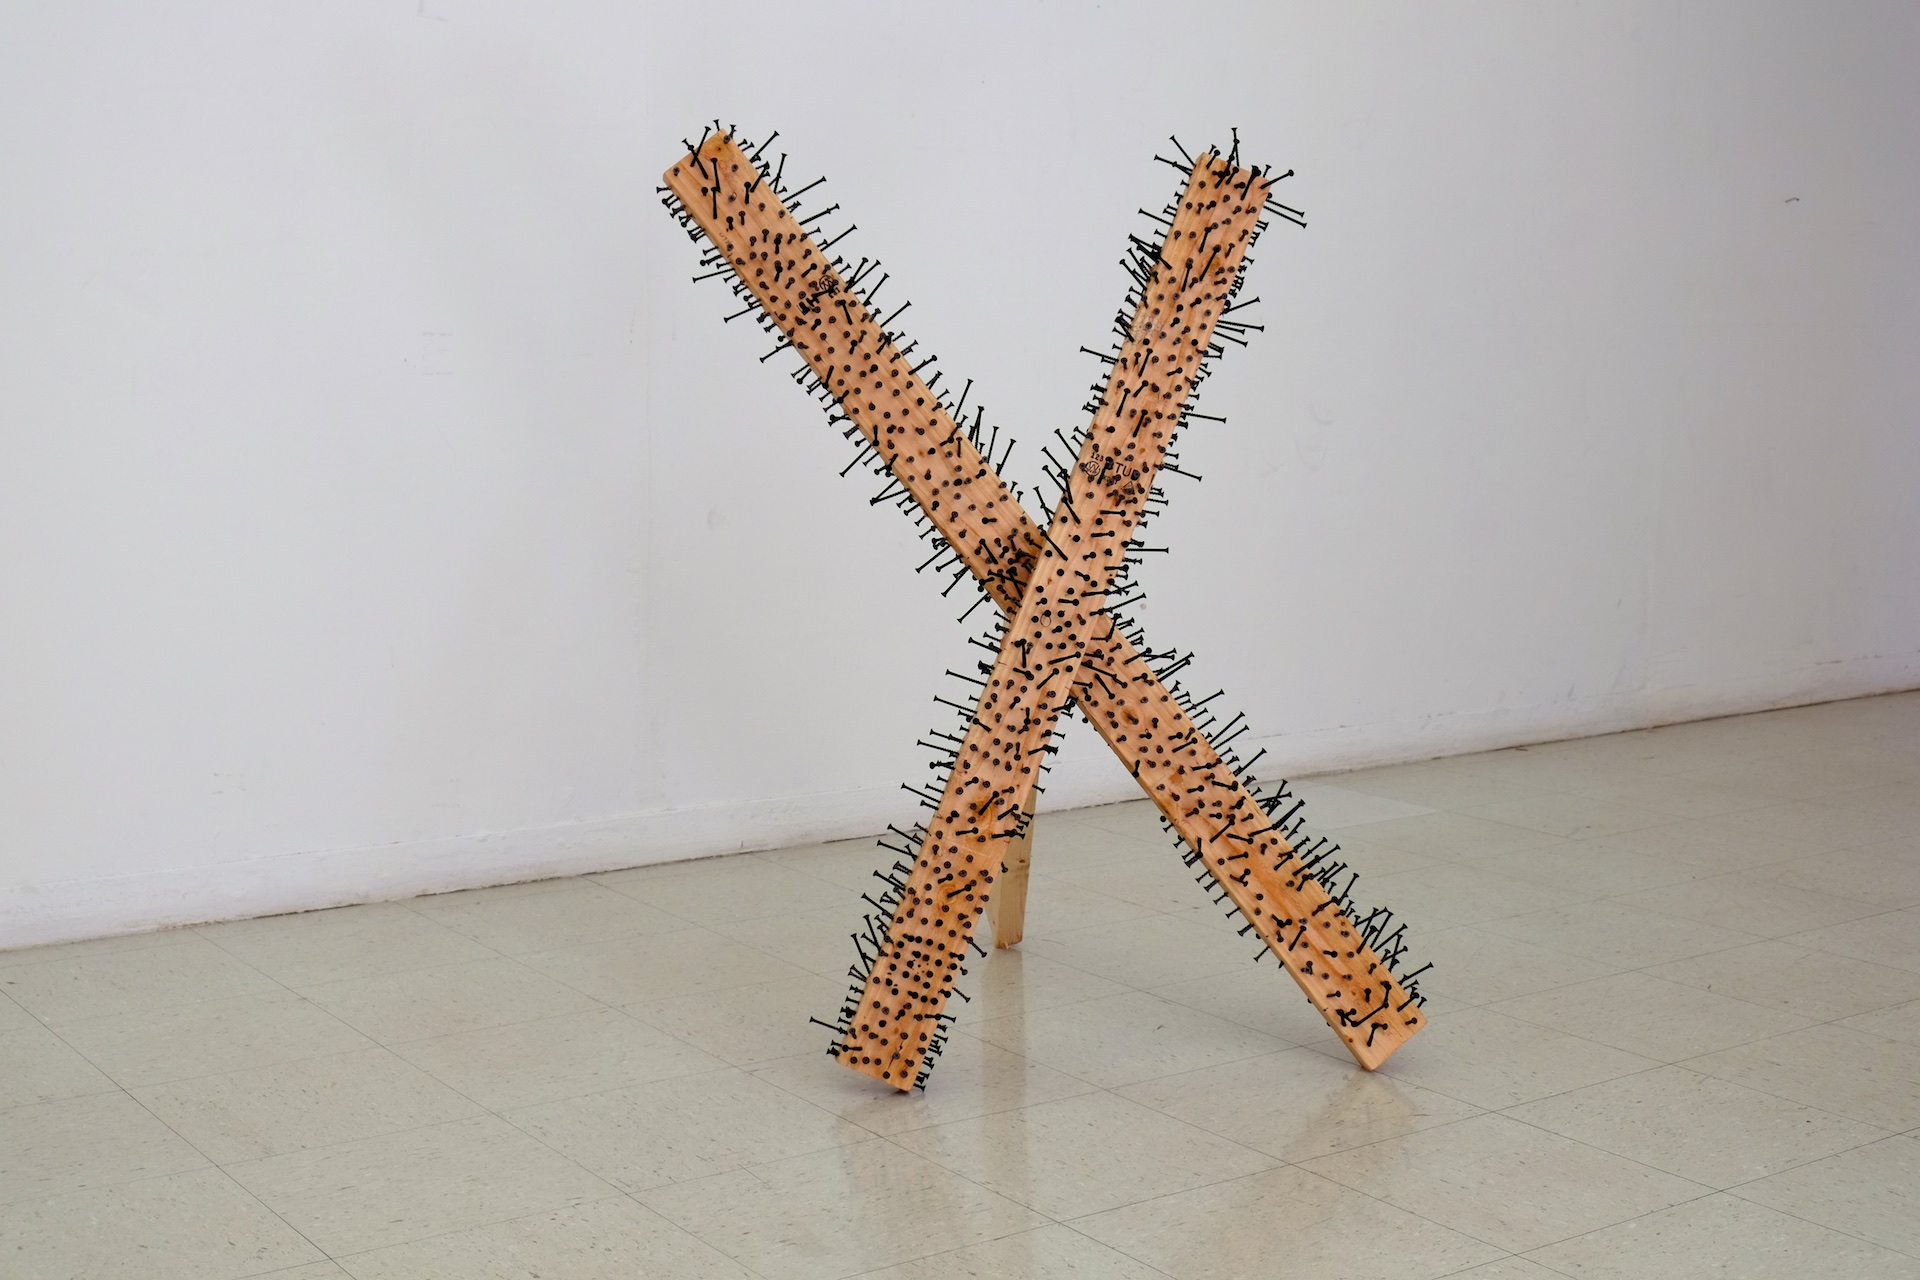 Made at University of Texas at El Paso in Introductory Sculpture, single 2x4 and 1,000 screws, 36x36x36 inches, 2016.